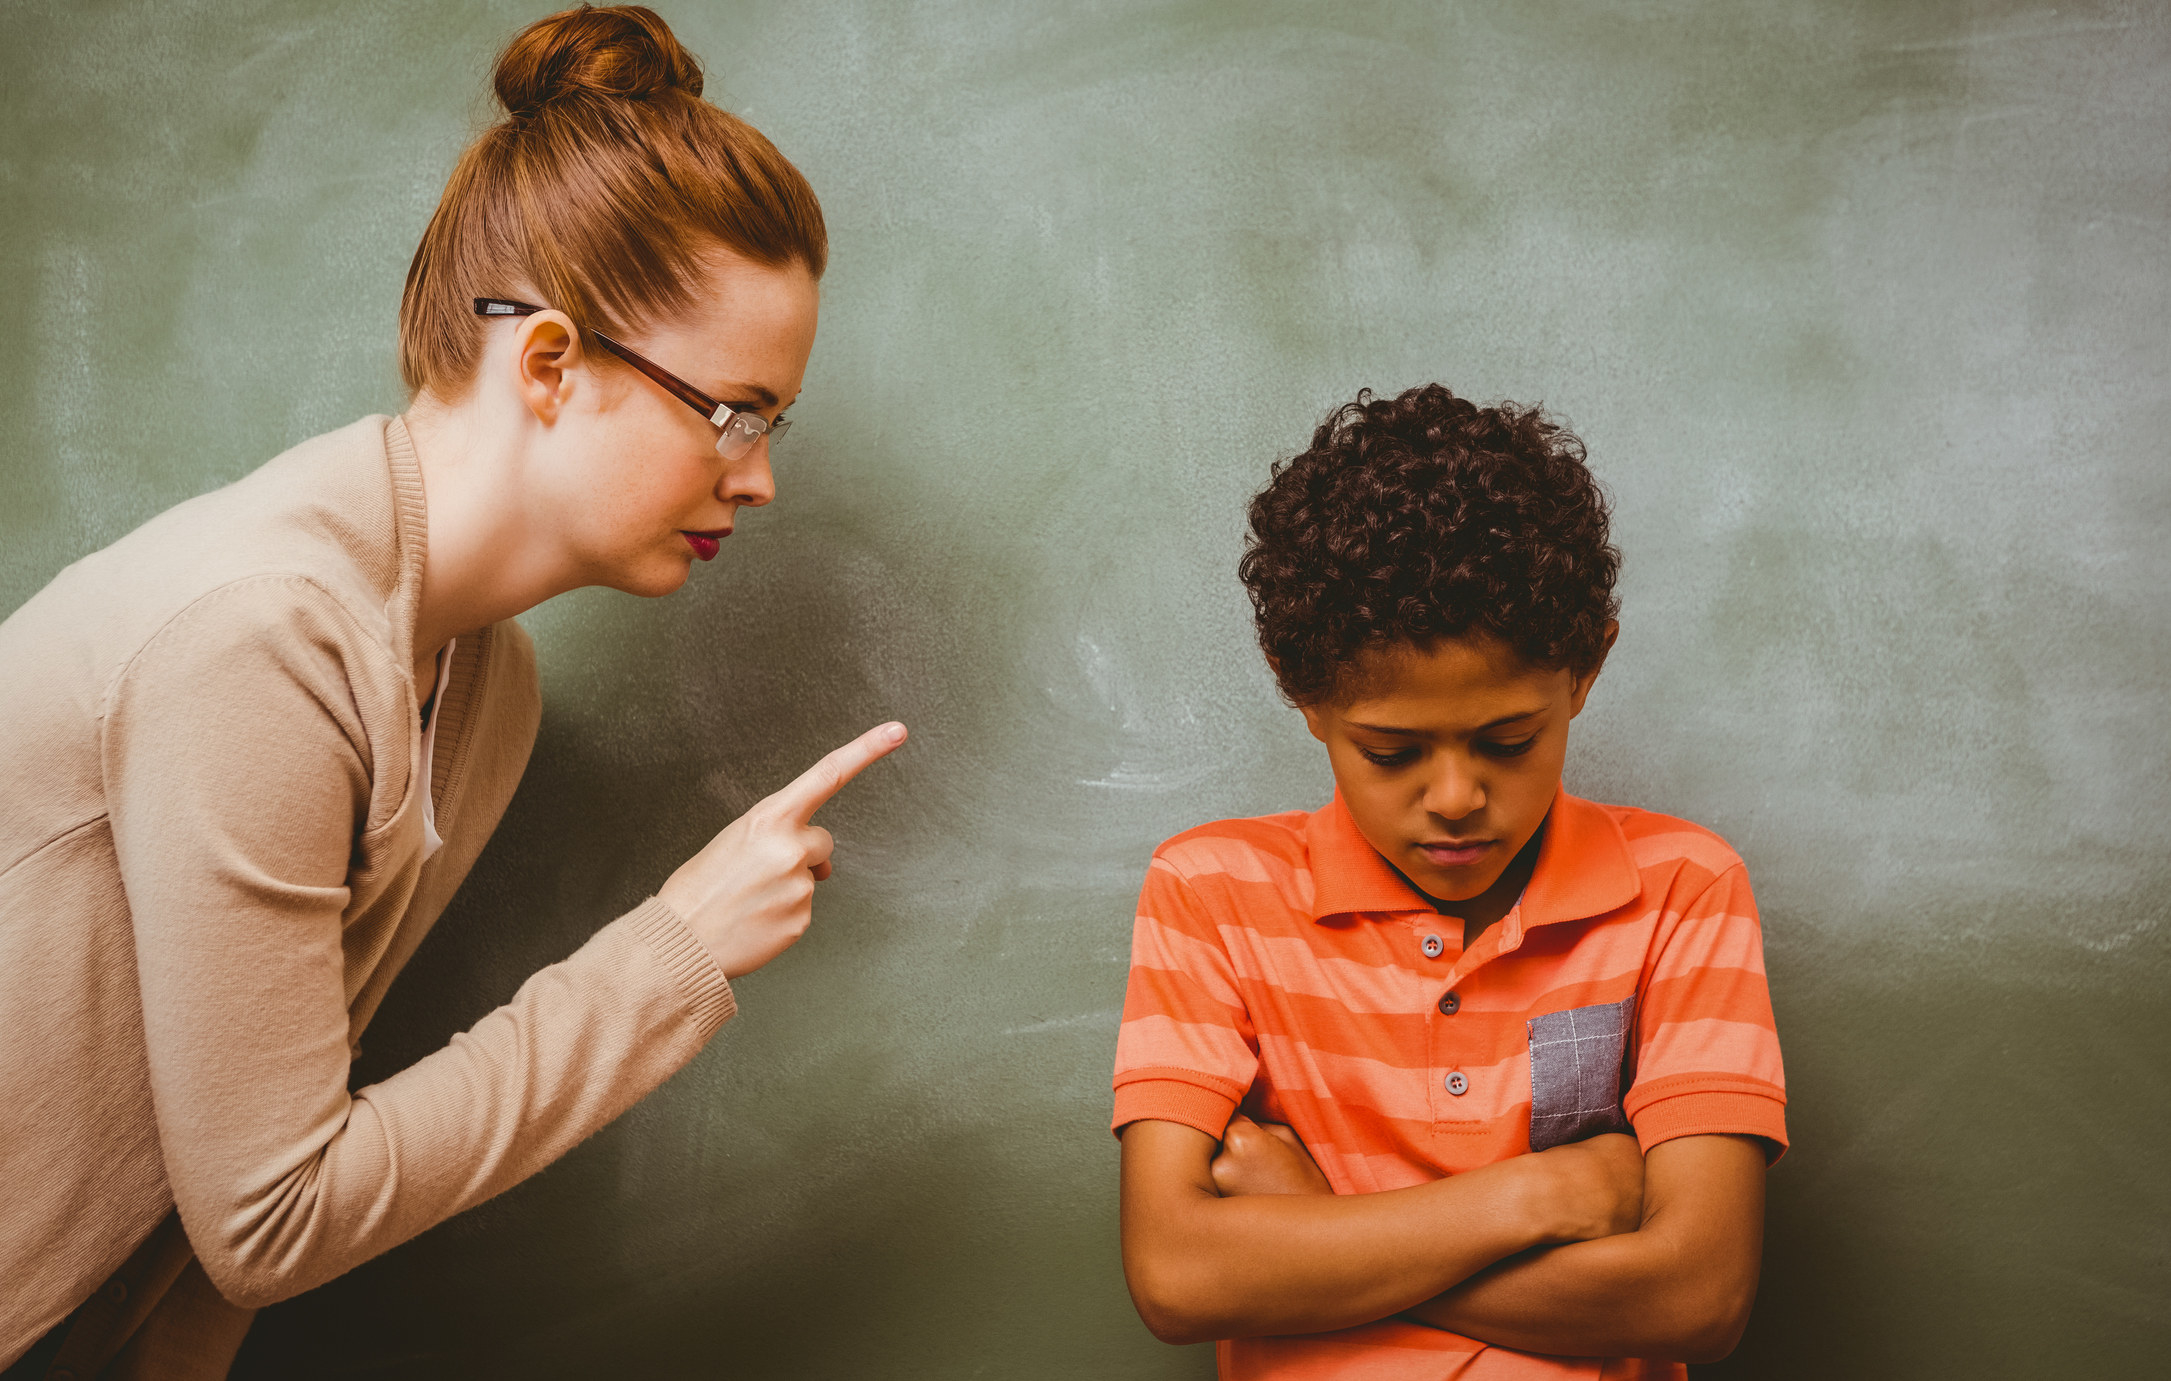 Female teacher shouting at boy in the classroom